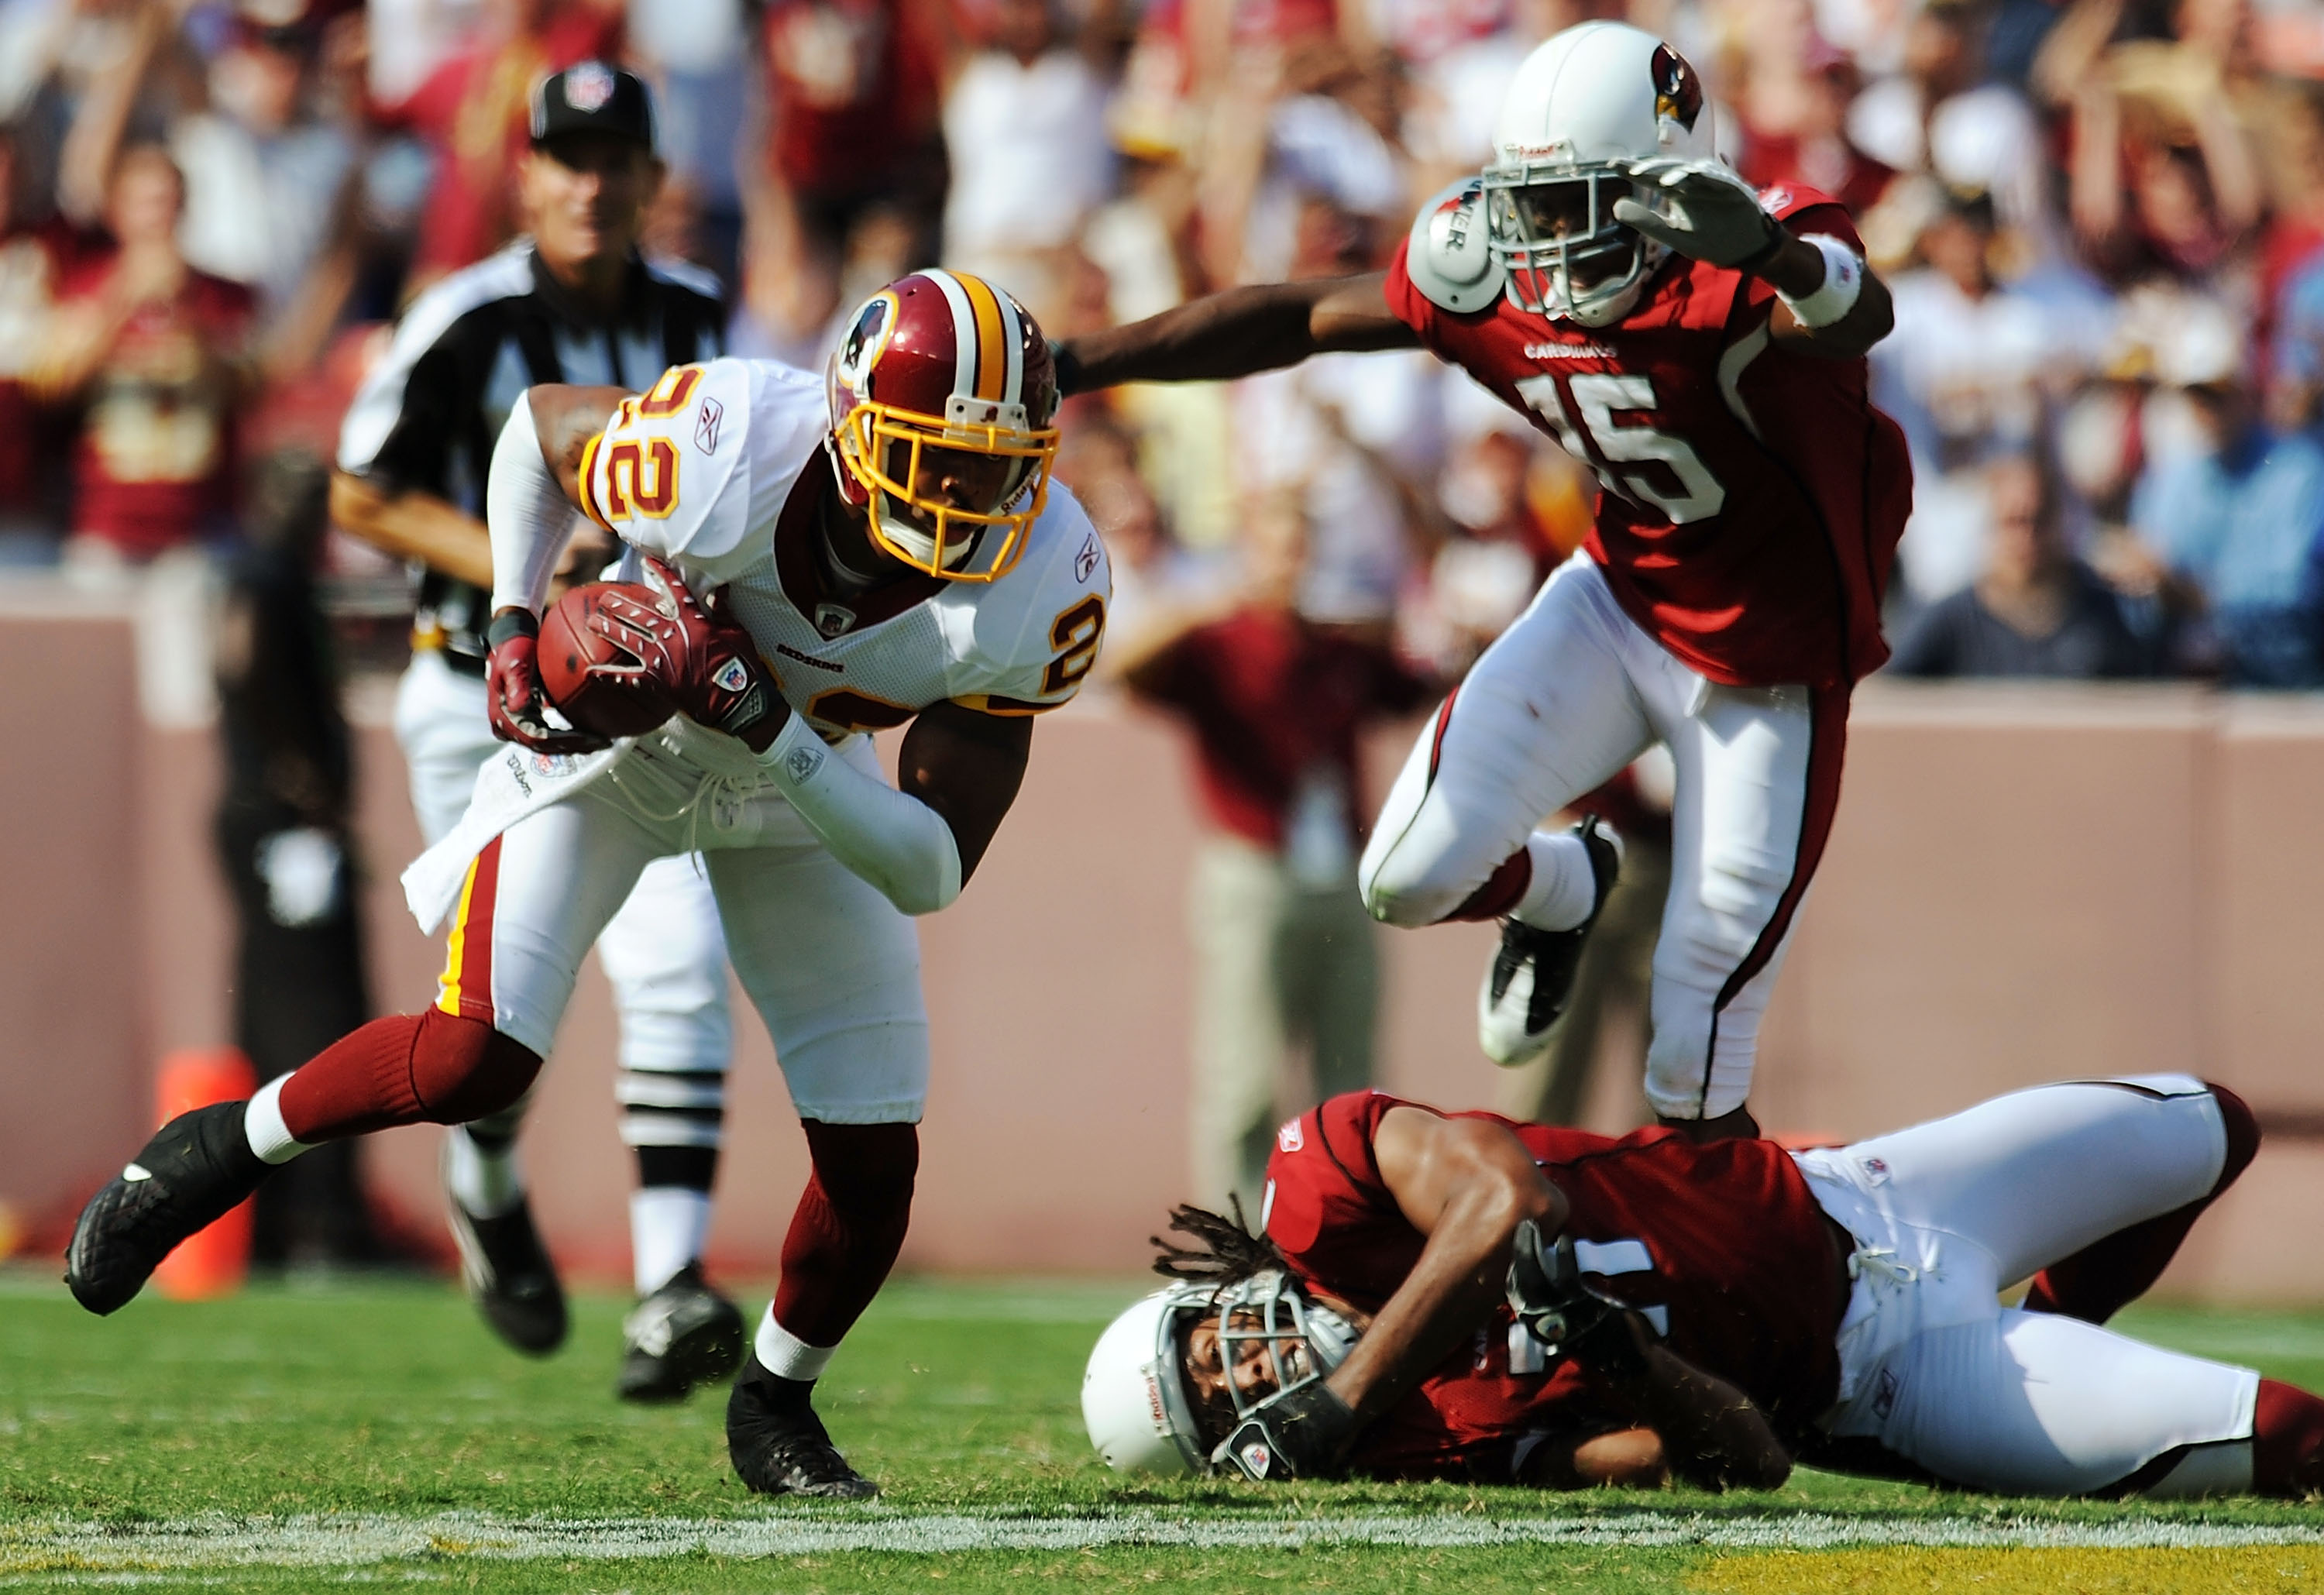 LANDOVER, MD - SEPTEMBER 21: Carlos Rogers #22 (L) of the Washington Redskins takes off on a long interception return against Arizona Cardinals Steve Breaston #15 (Top R) and Larry Fitzgerald #11 (Bottom R) at FedEx Field September 21, 2008 in Landover ,